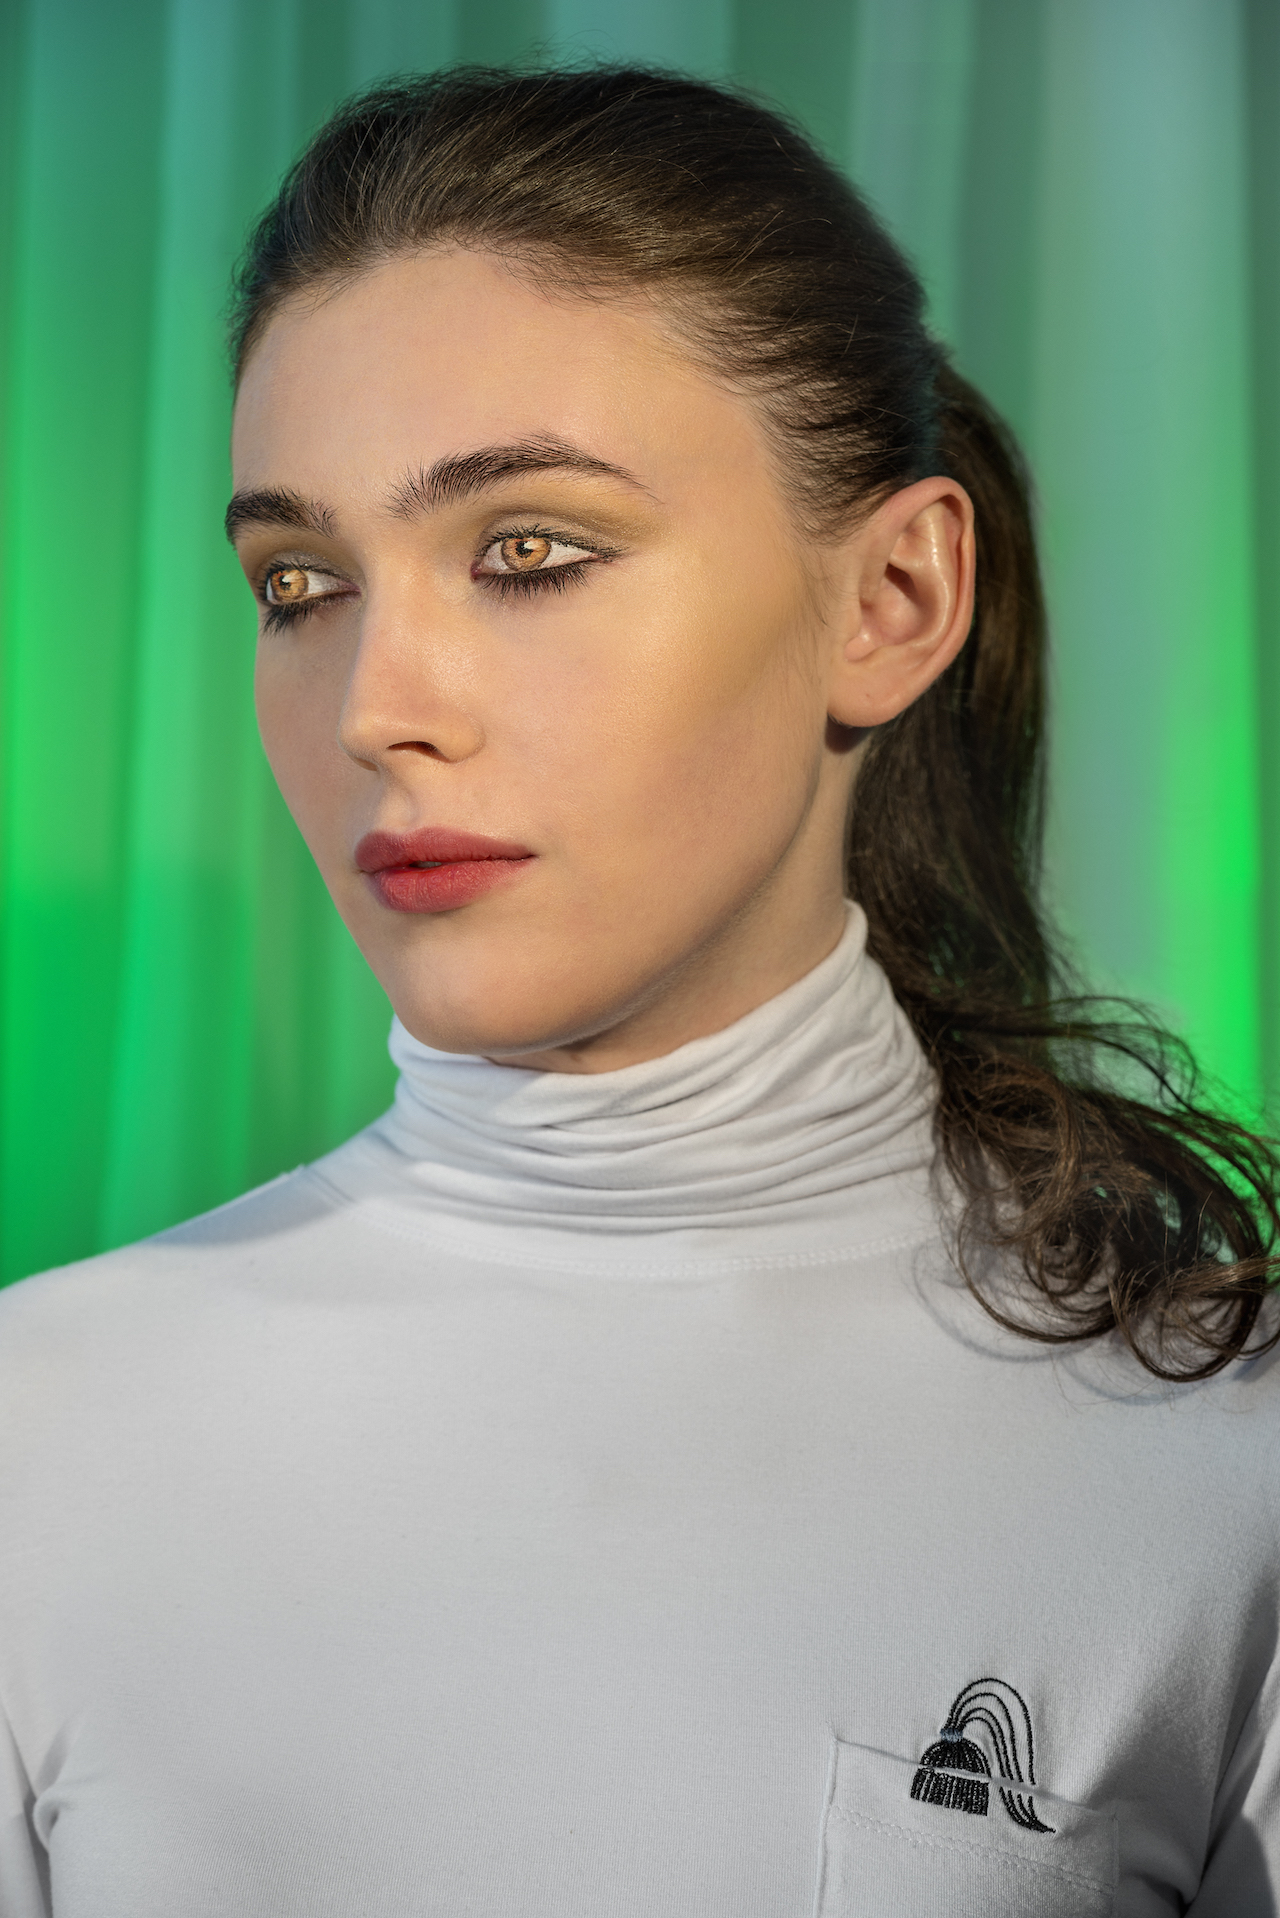 """Laurie Simmons, """"How We See/Edie (Green)"""" (2015), pigment print, 70 x 48 inches (© Laurie Simmons, courtesy the artist and Salon 94)"""